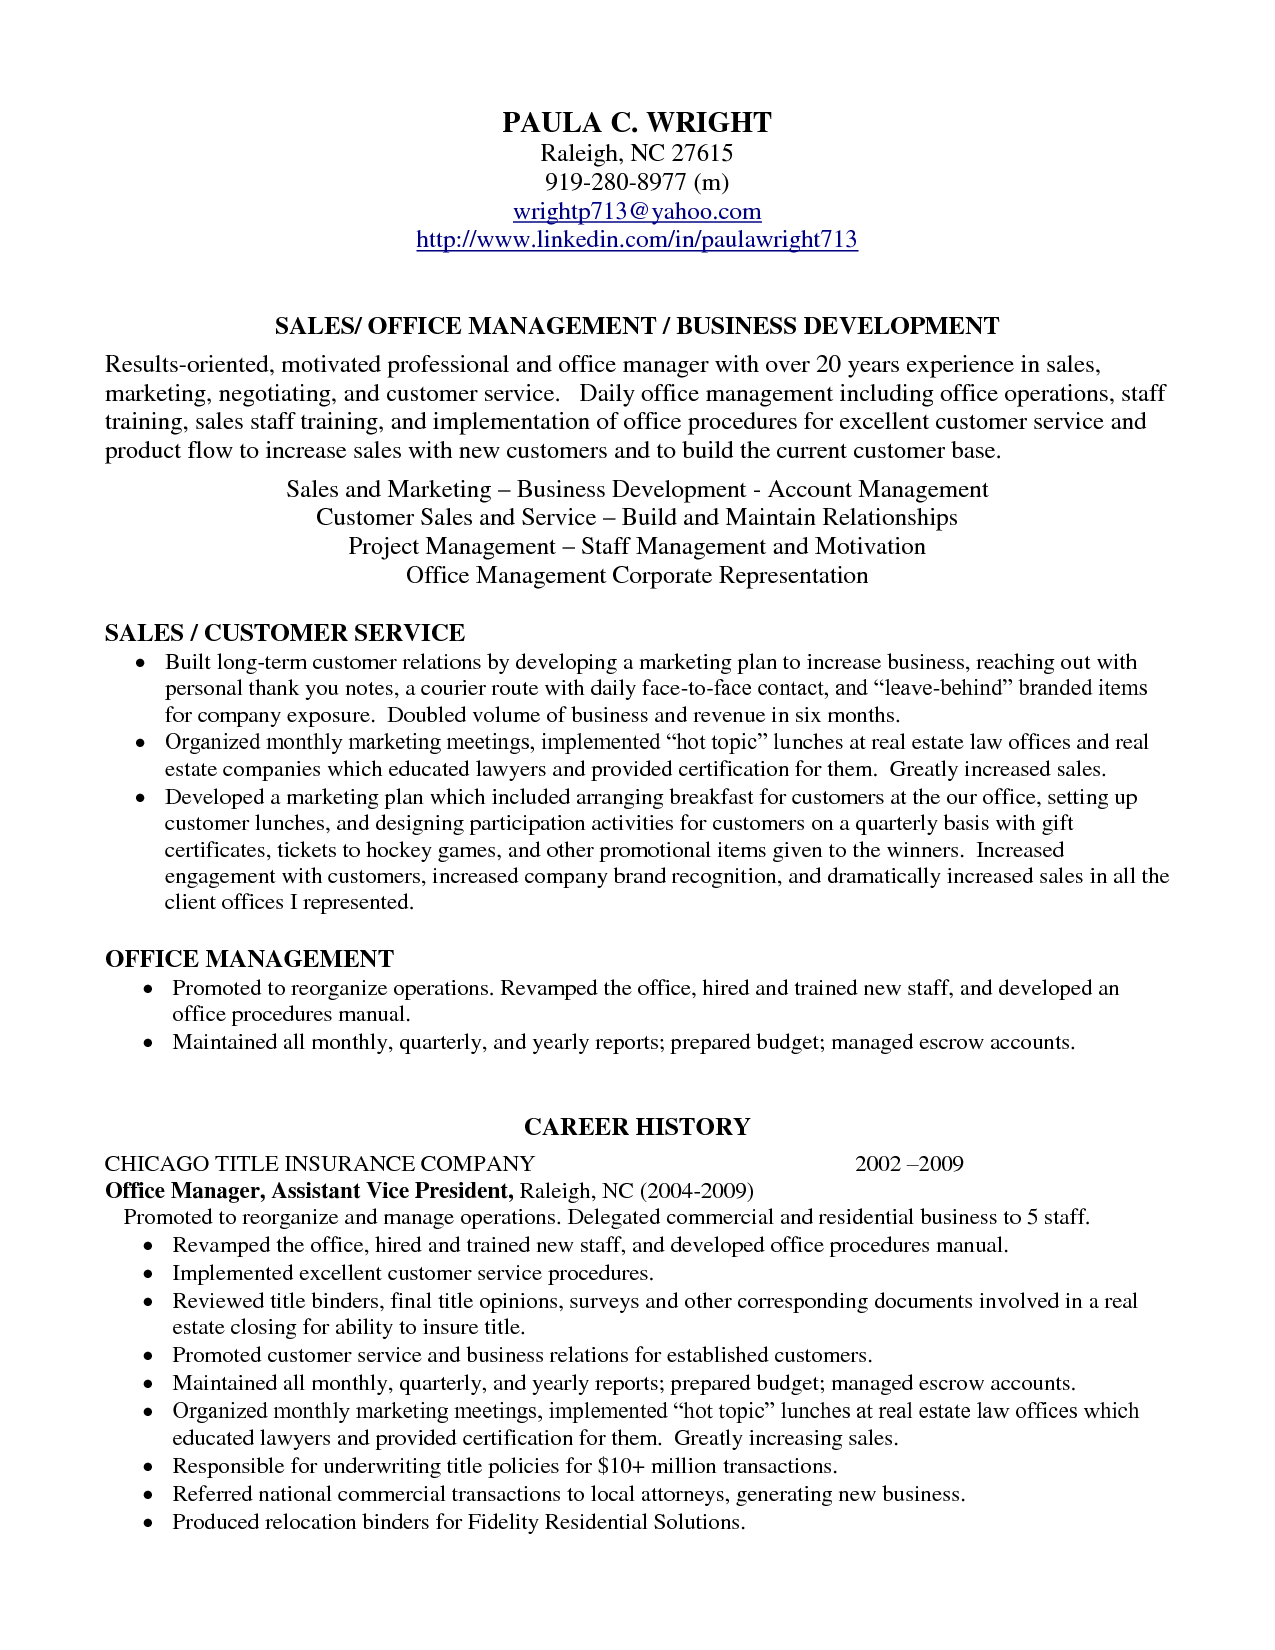 Resume Writing To Resume Profile Examples